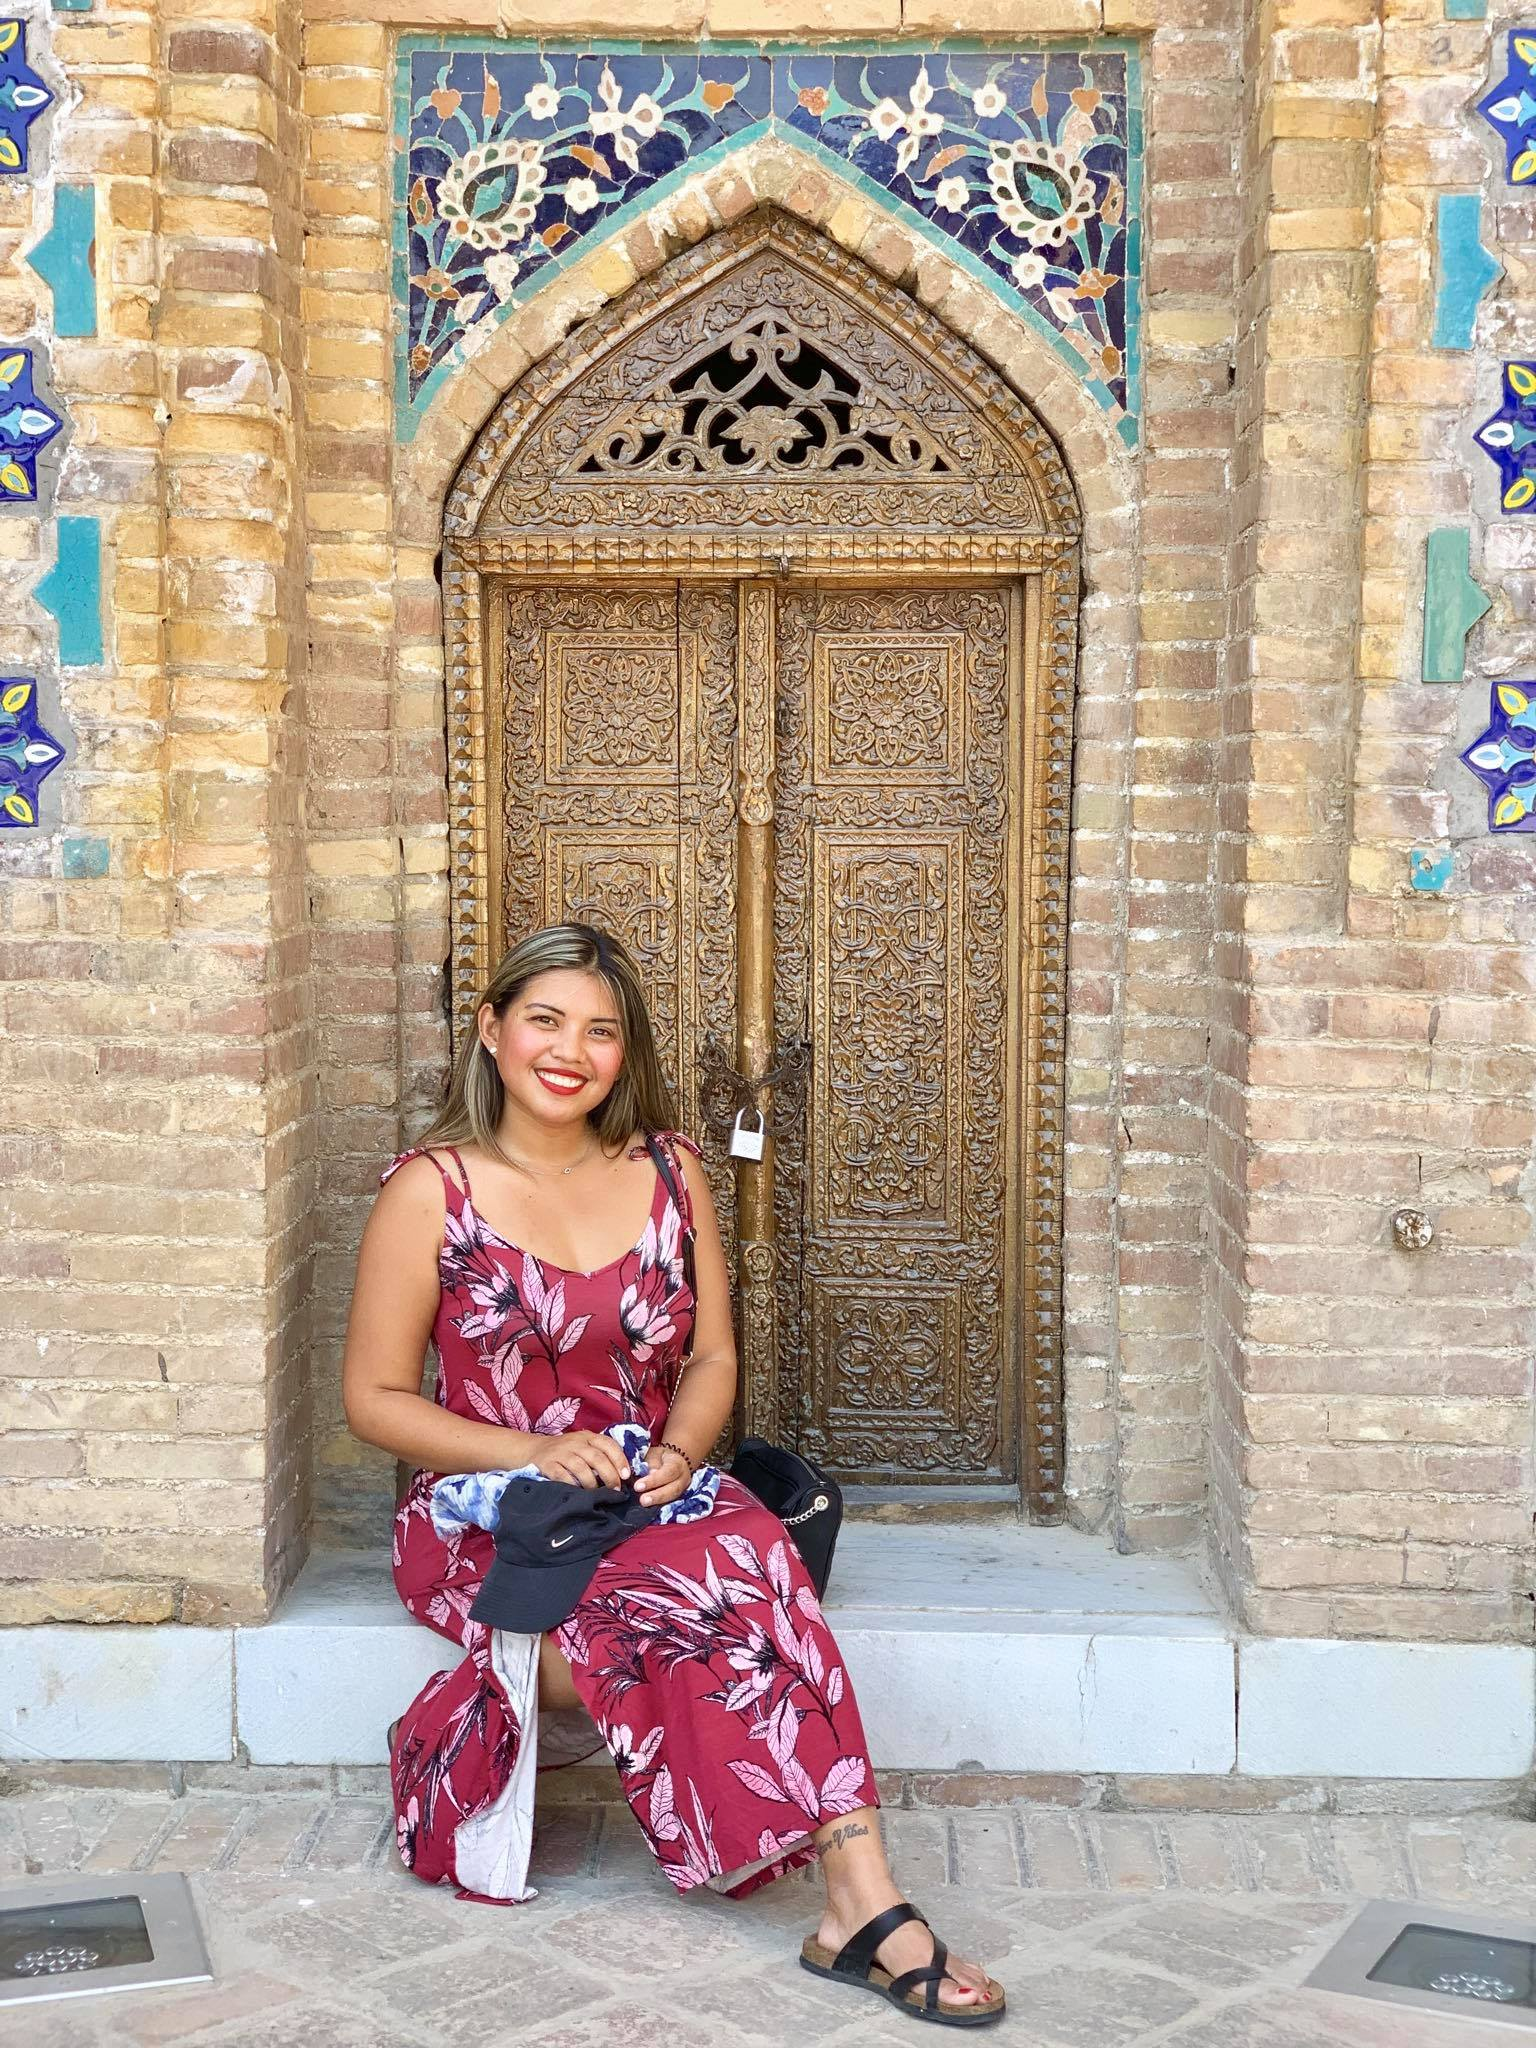 Kach Solo Travels in 2019 Hello from Samarqand  Samarkand in the southeastern part of Uzbekistan15.jpg